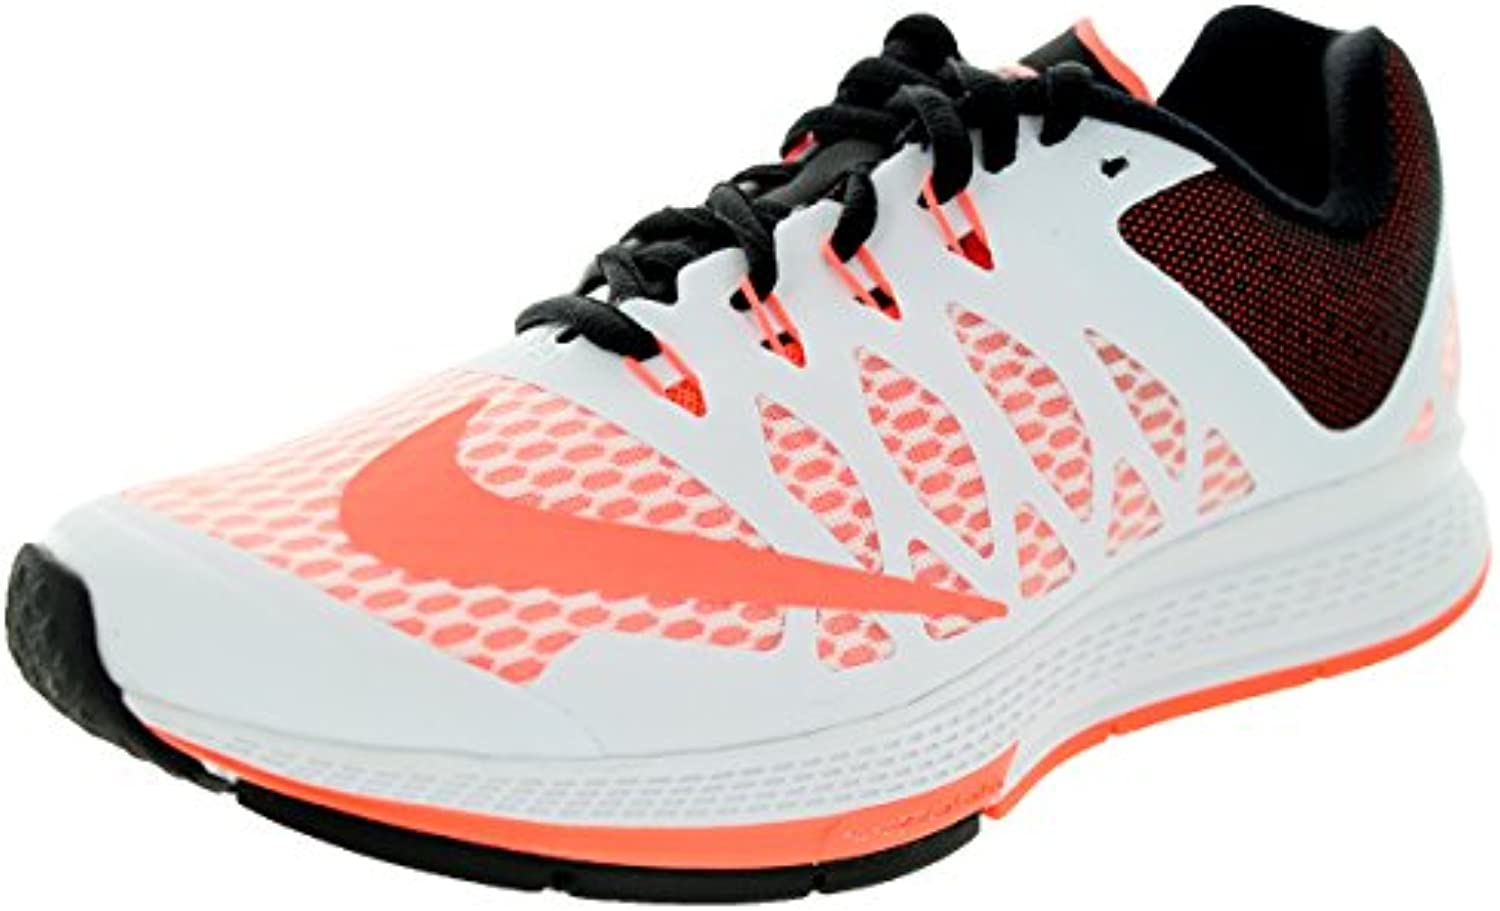 Nike Air Zoom Elite 7 Laufschuh